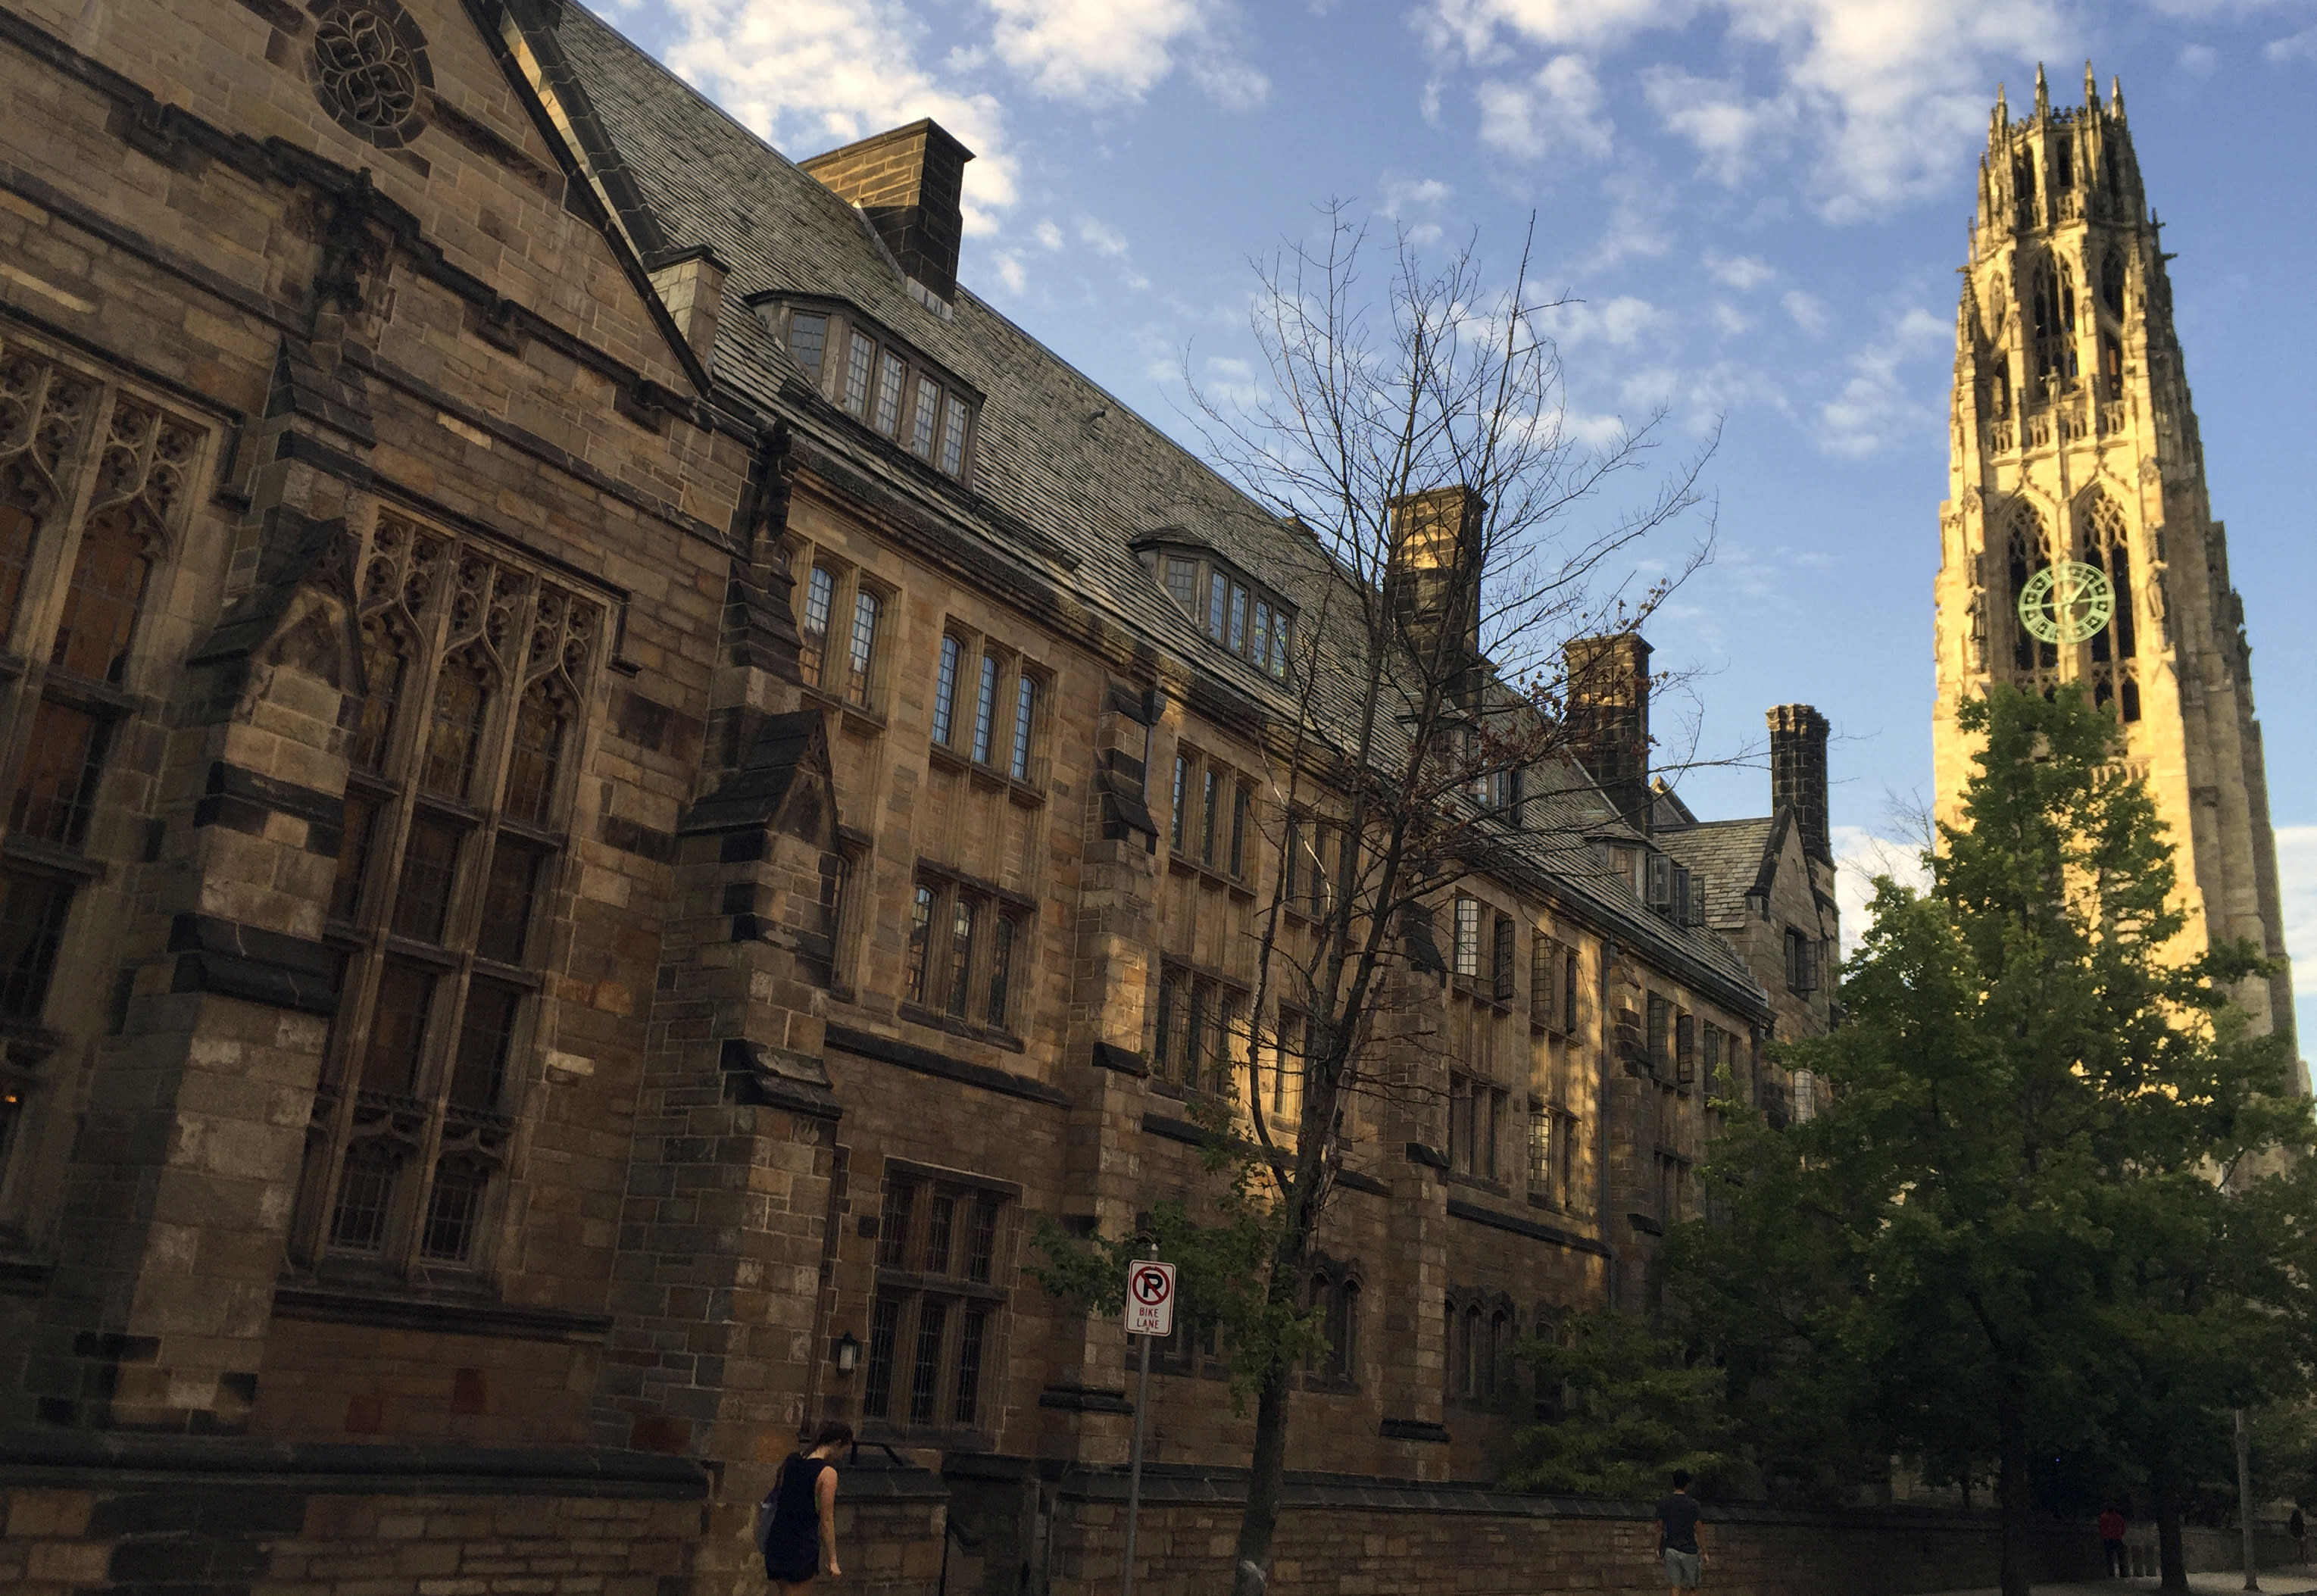 Yale University 'Illegally Discriminates' Against Asian, White Applicants: DOJ